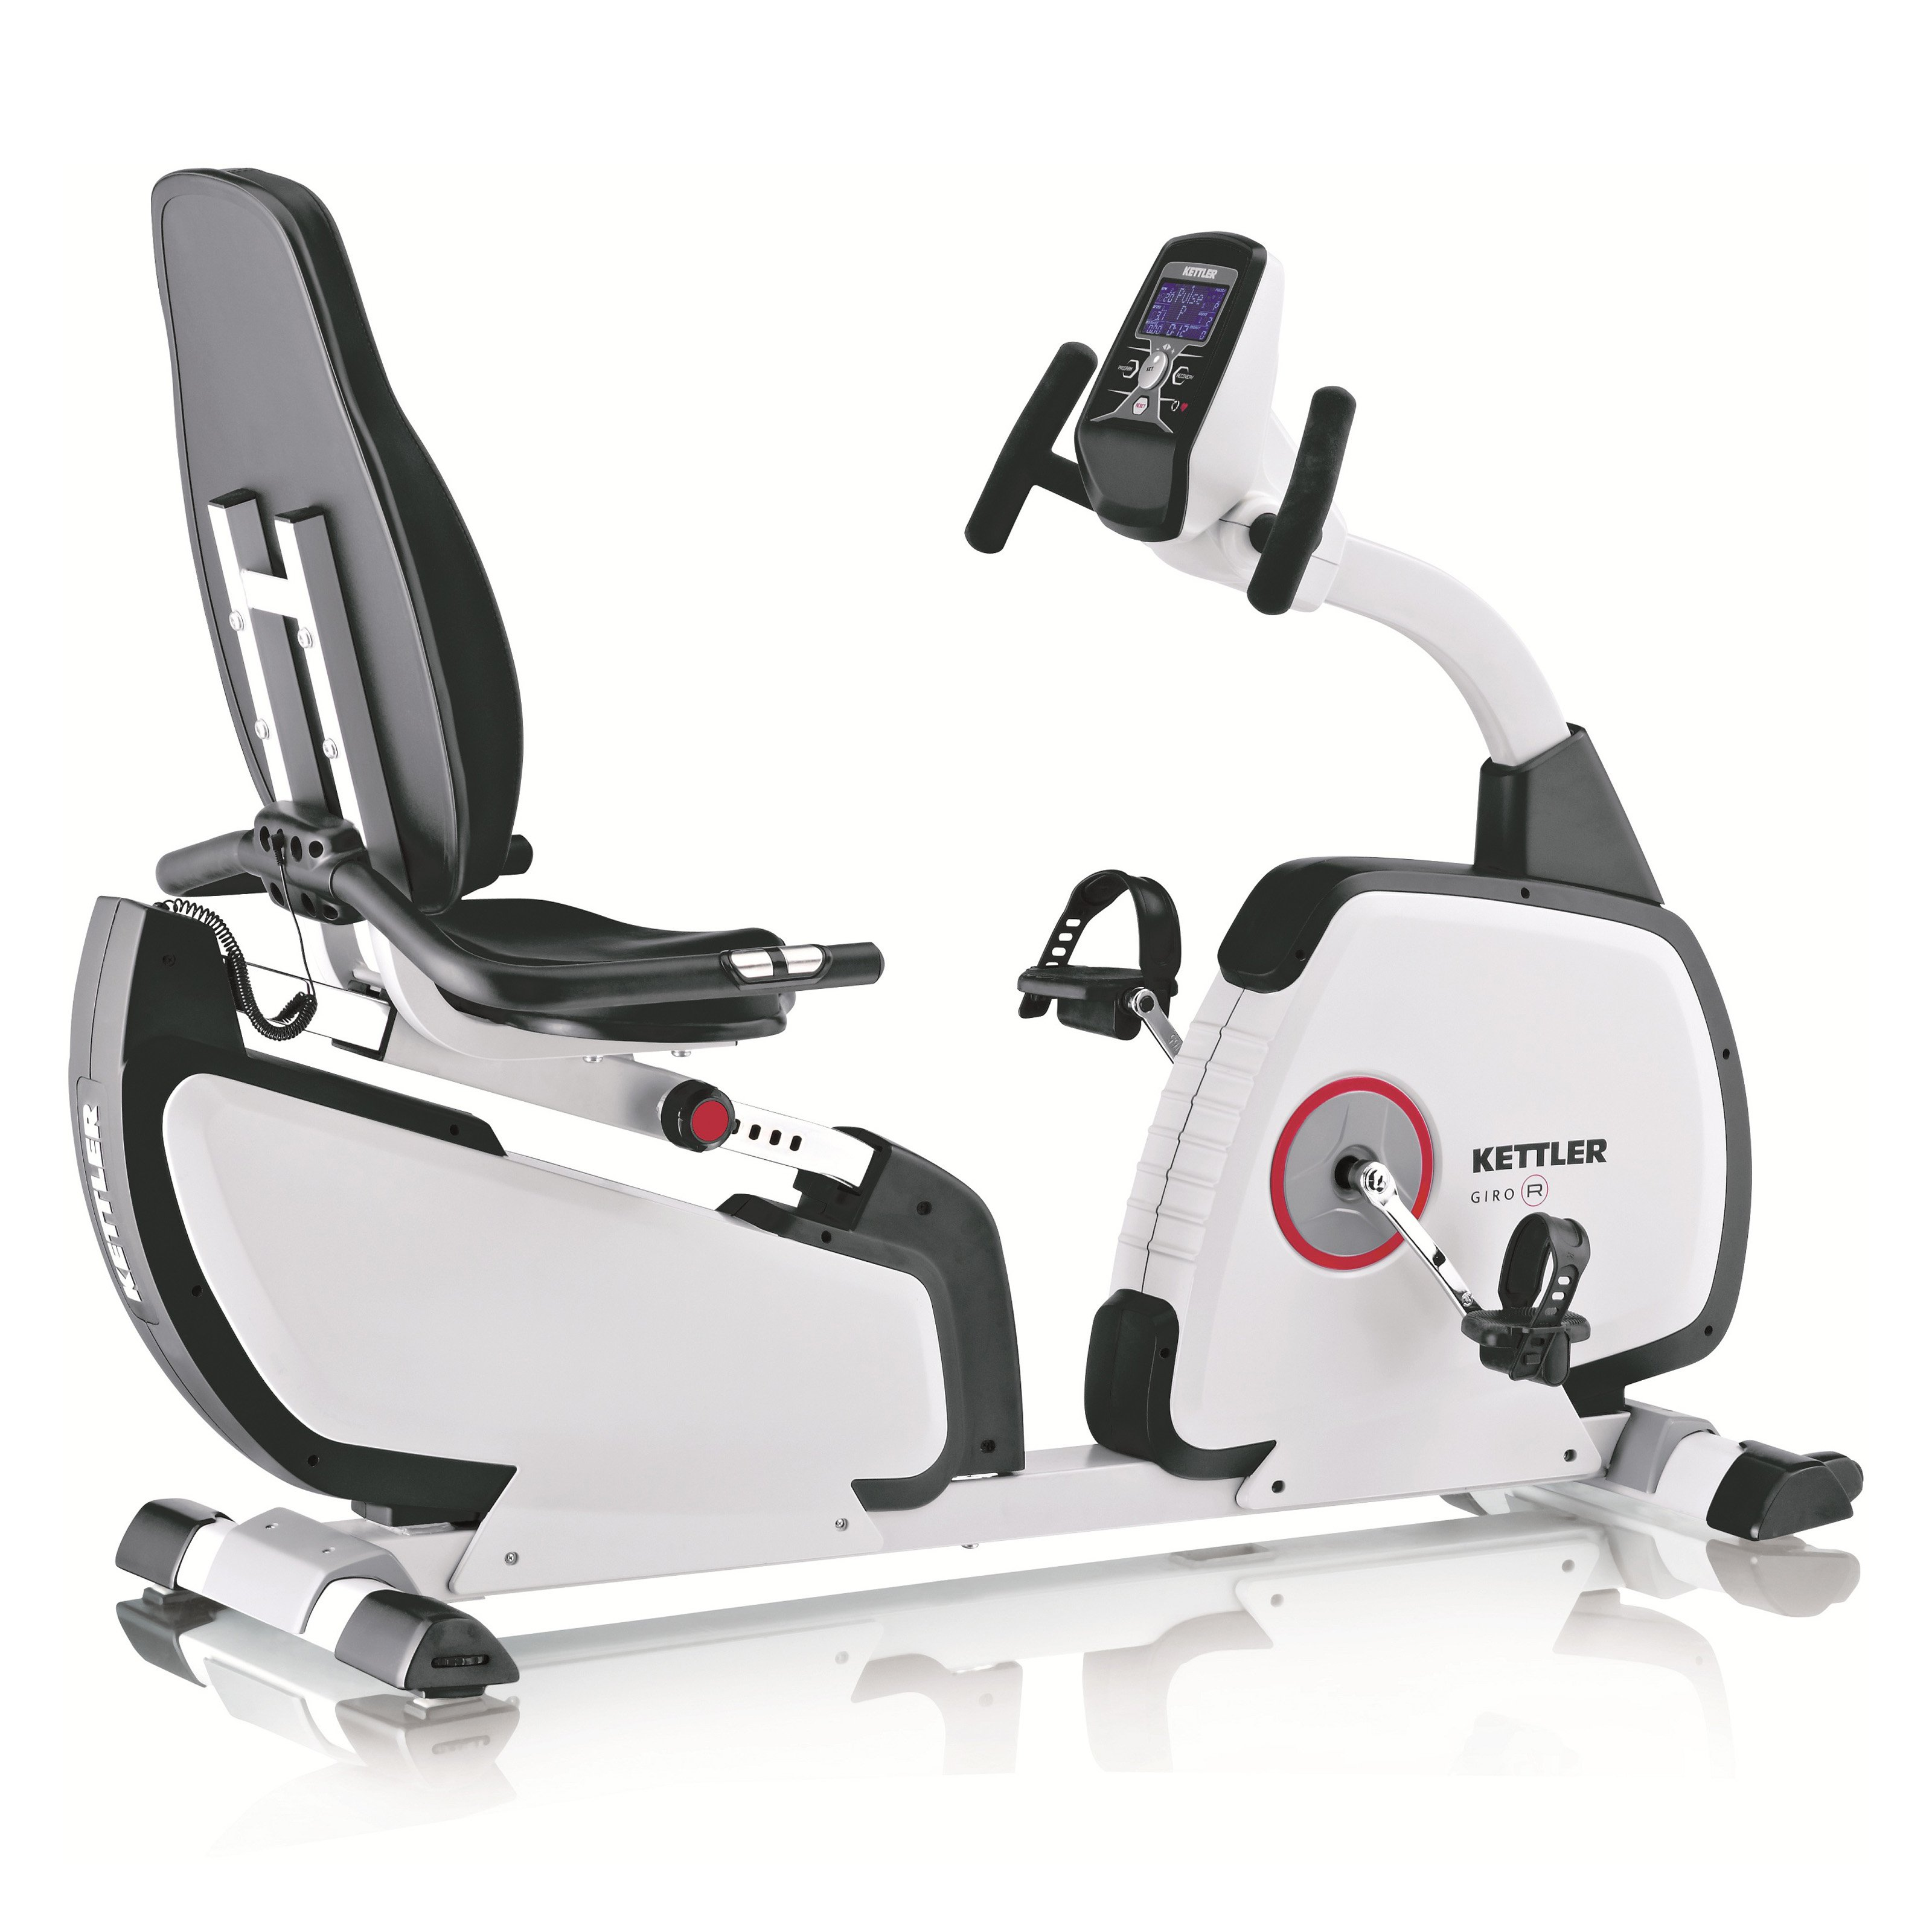 KETTLER® Advantage GIRO R Recumbent Exercise Bike